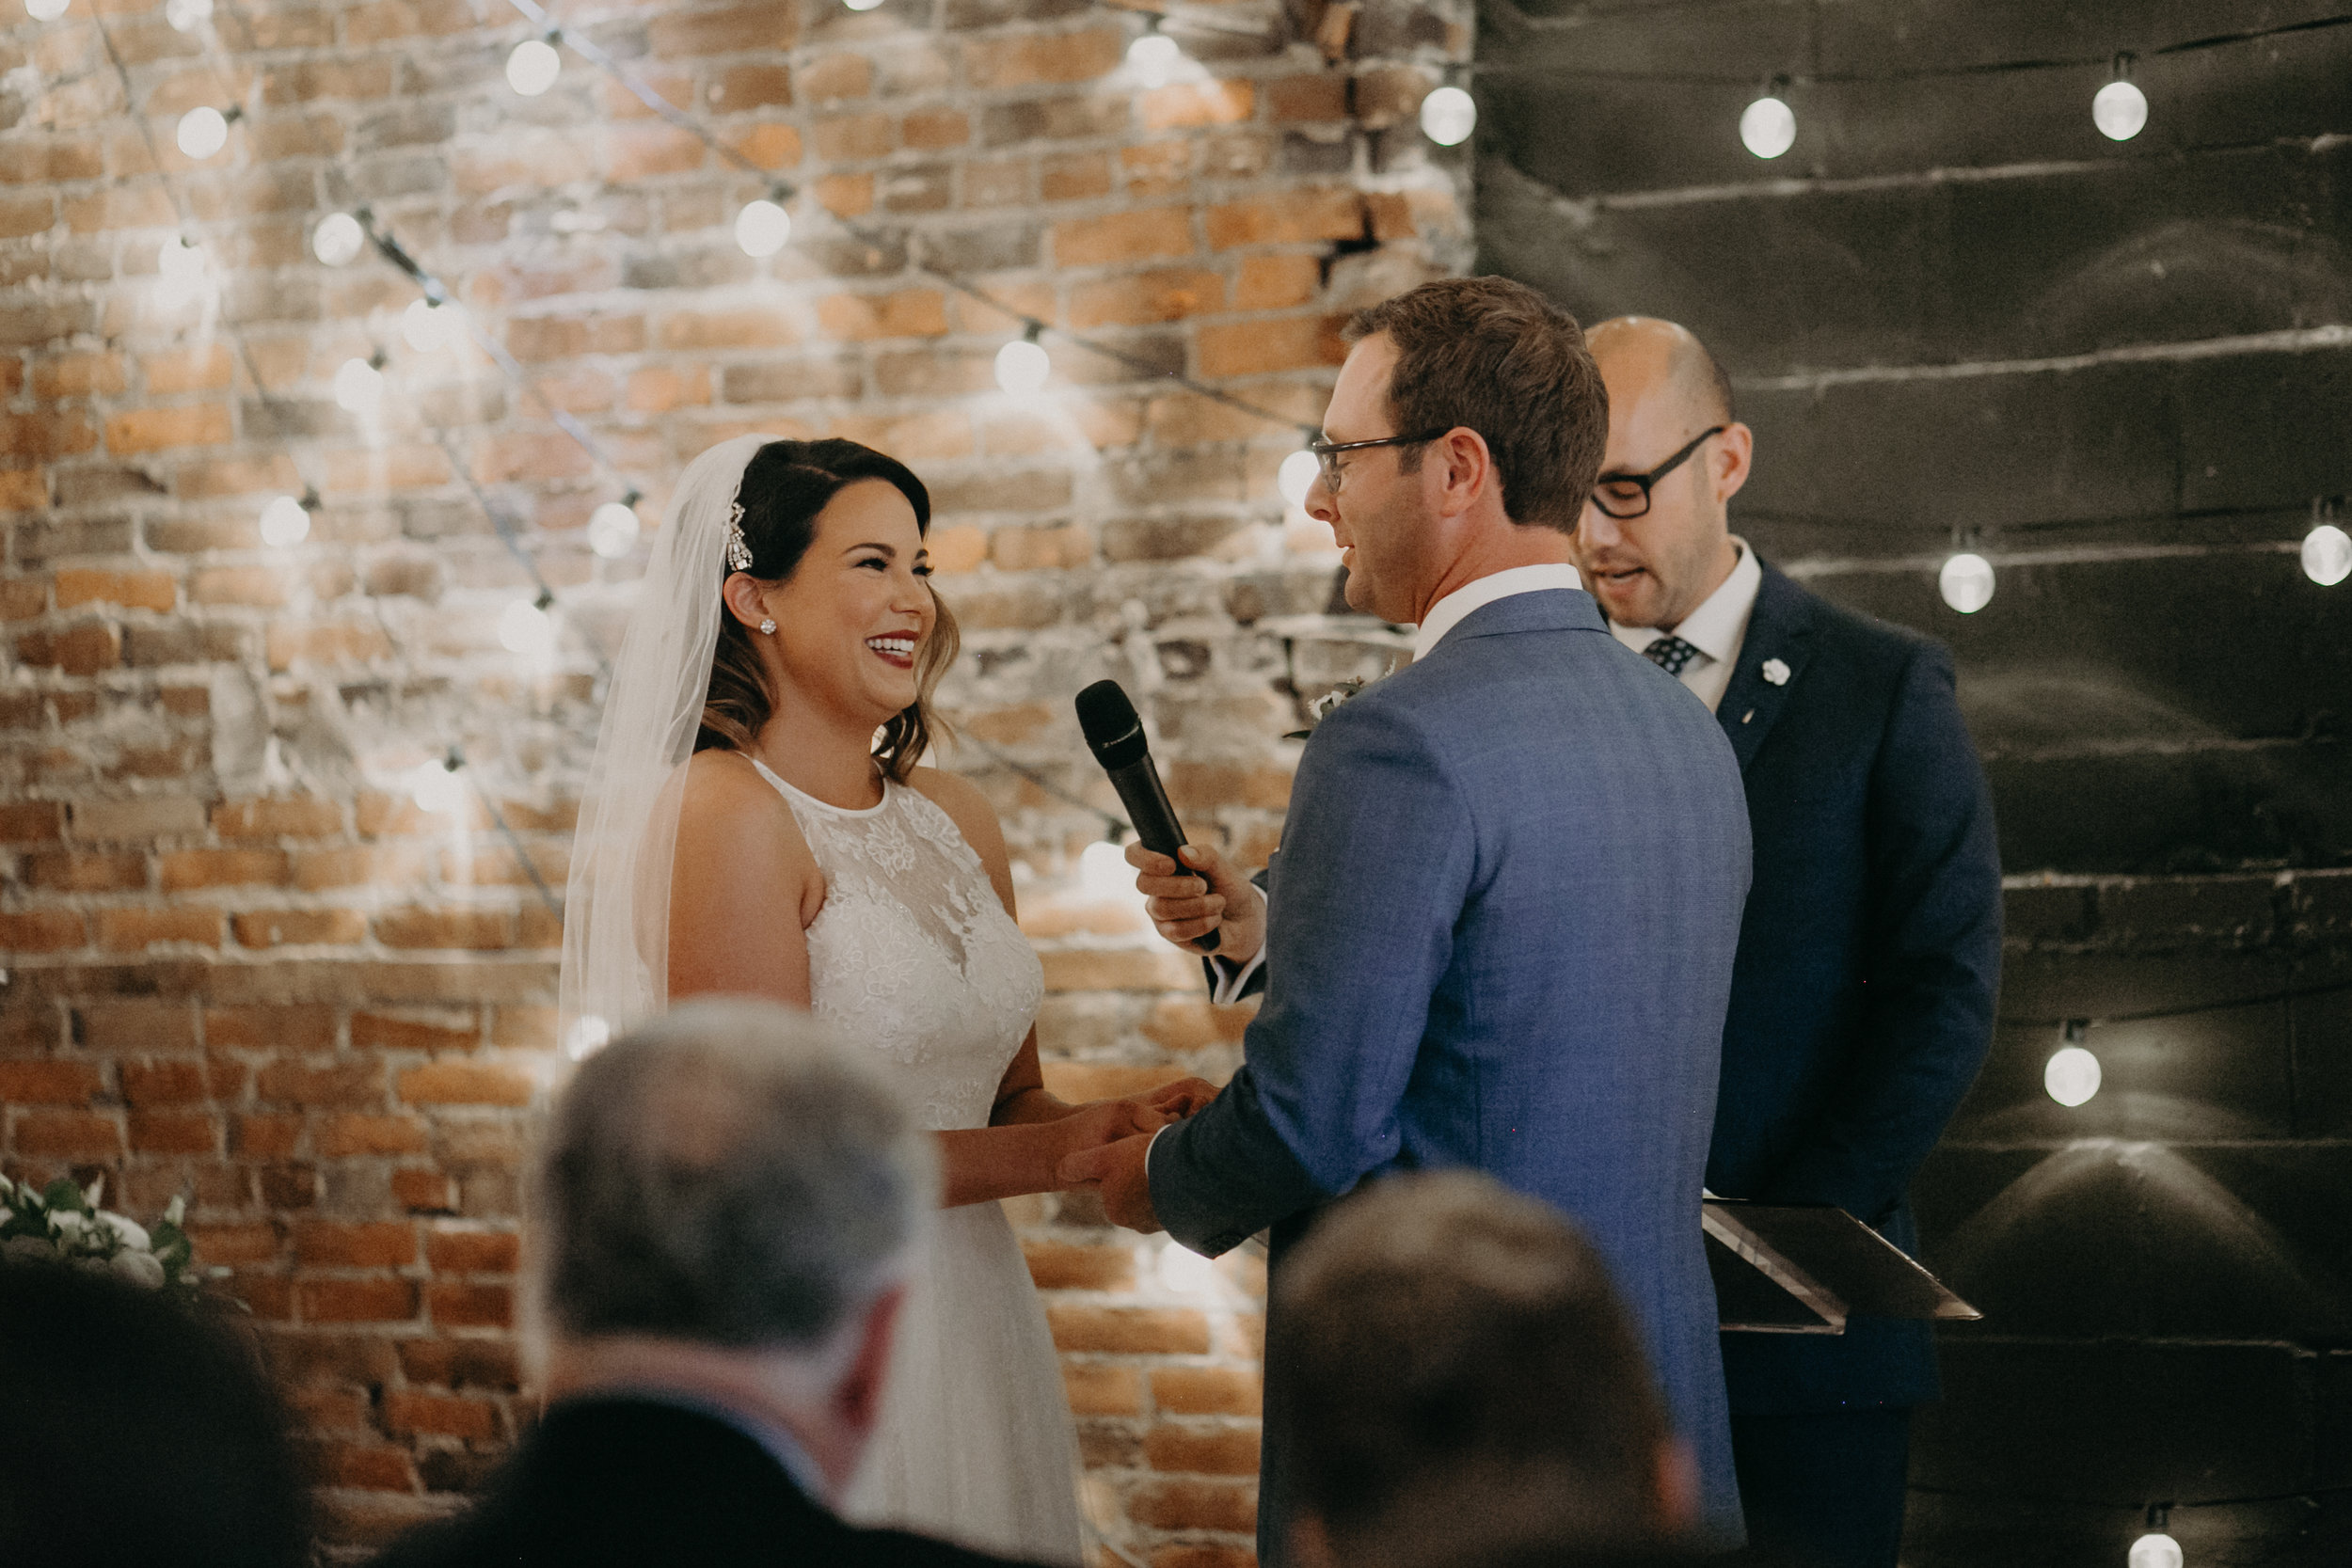 Andrea Wagner photography captures dimly lit and intimate wedding ceremony at The Loft at Studio J